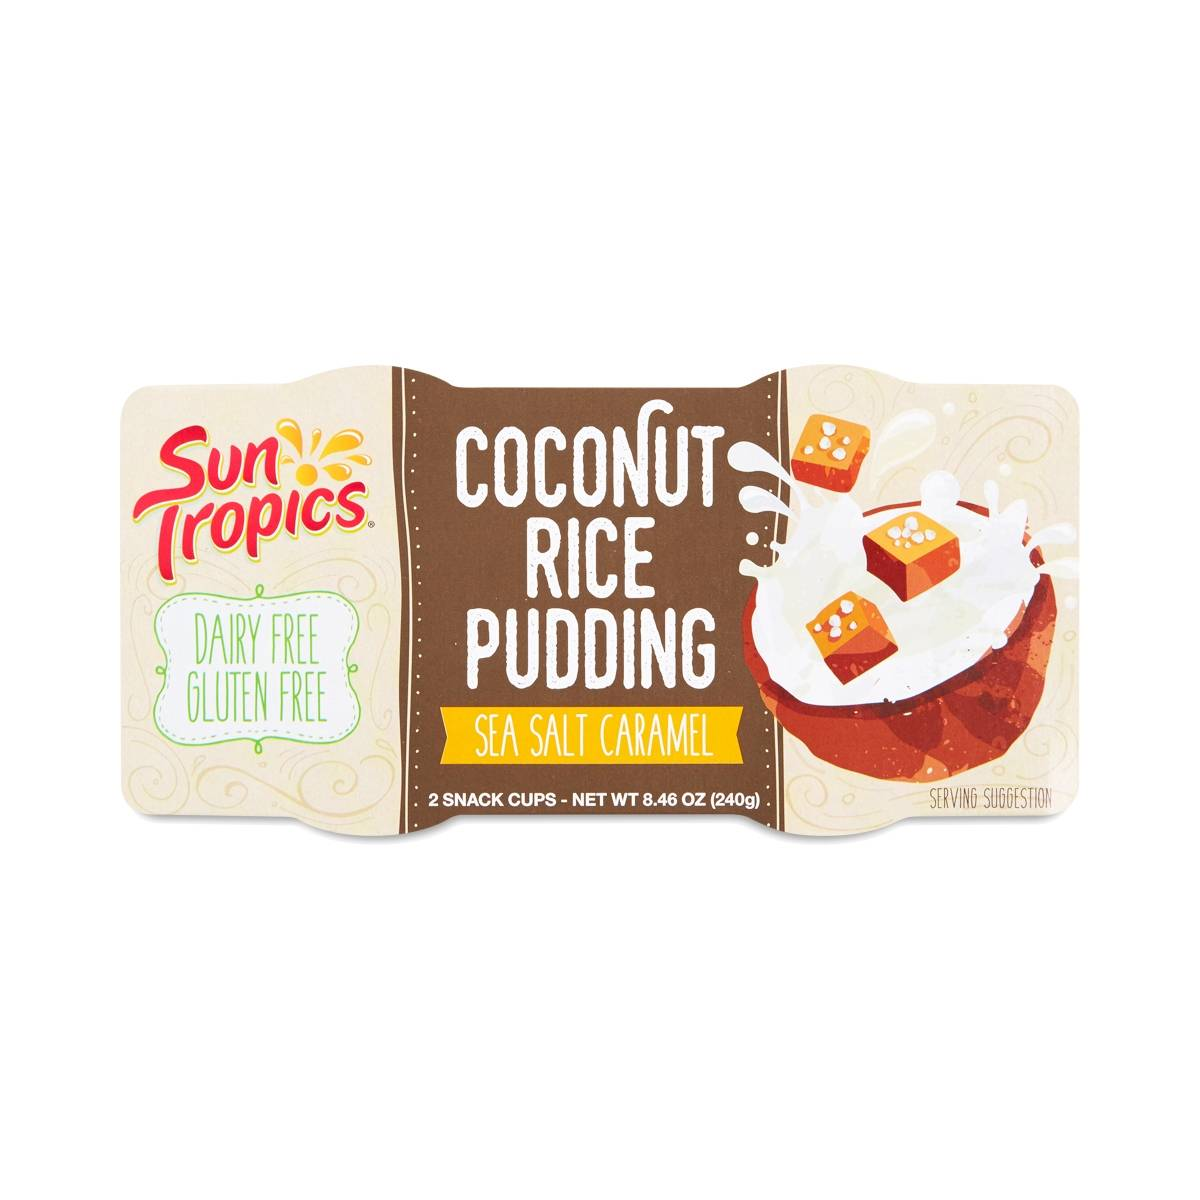 Sun Tropics Sea Salt Caramel Coconut Rice Pudding - Thrive Market